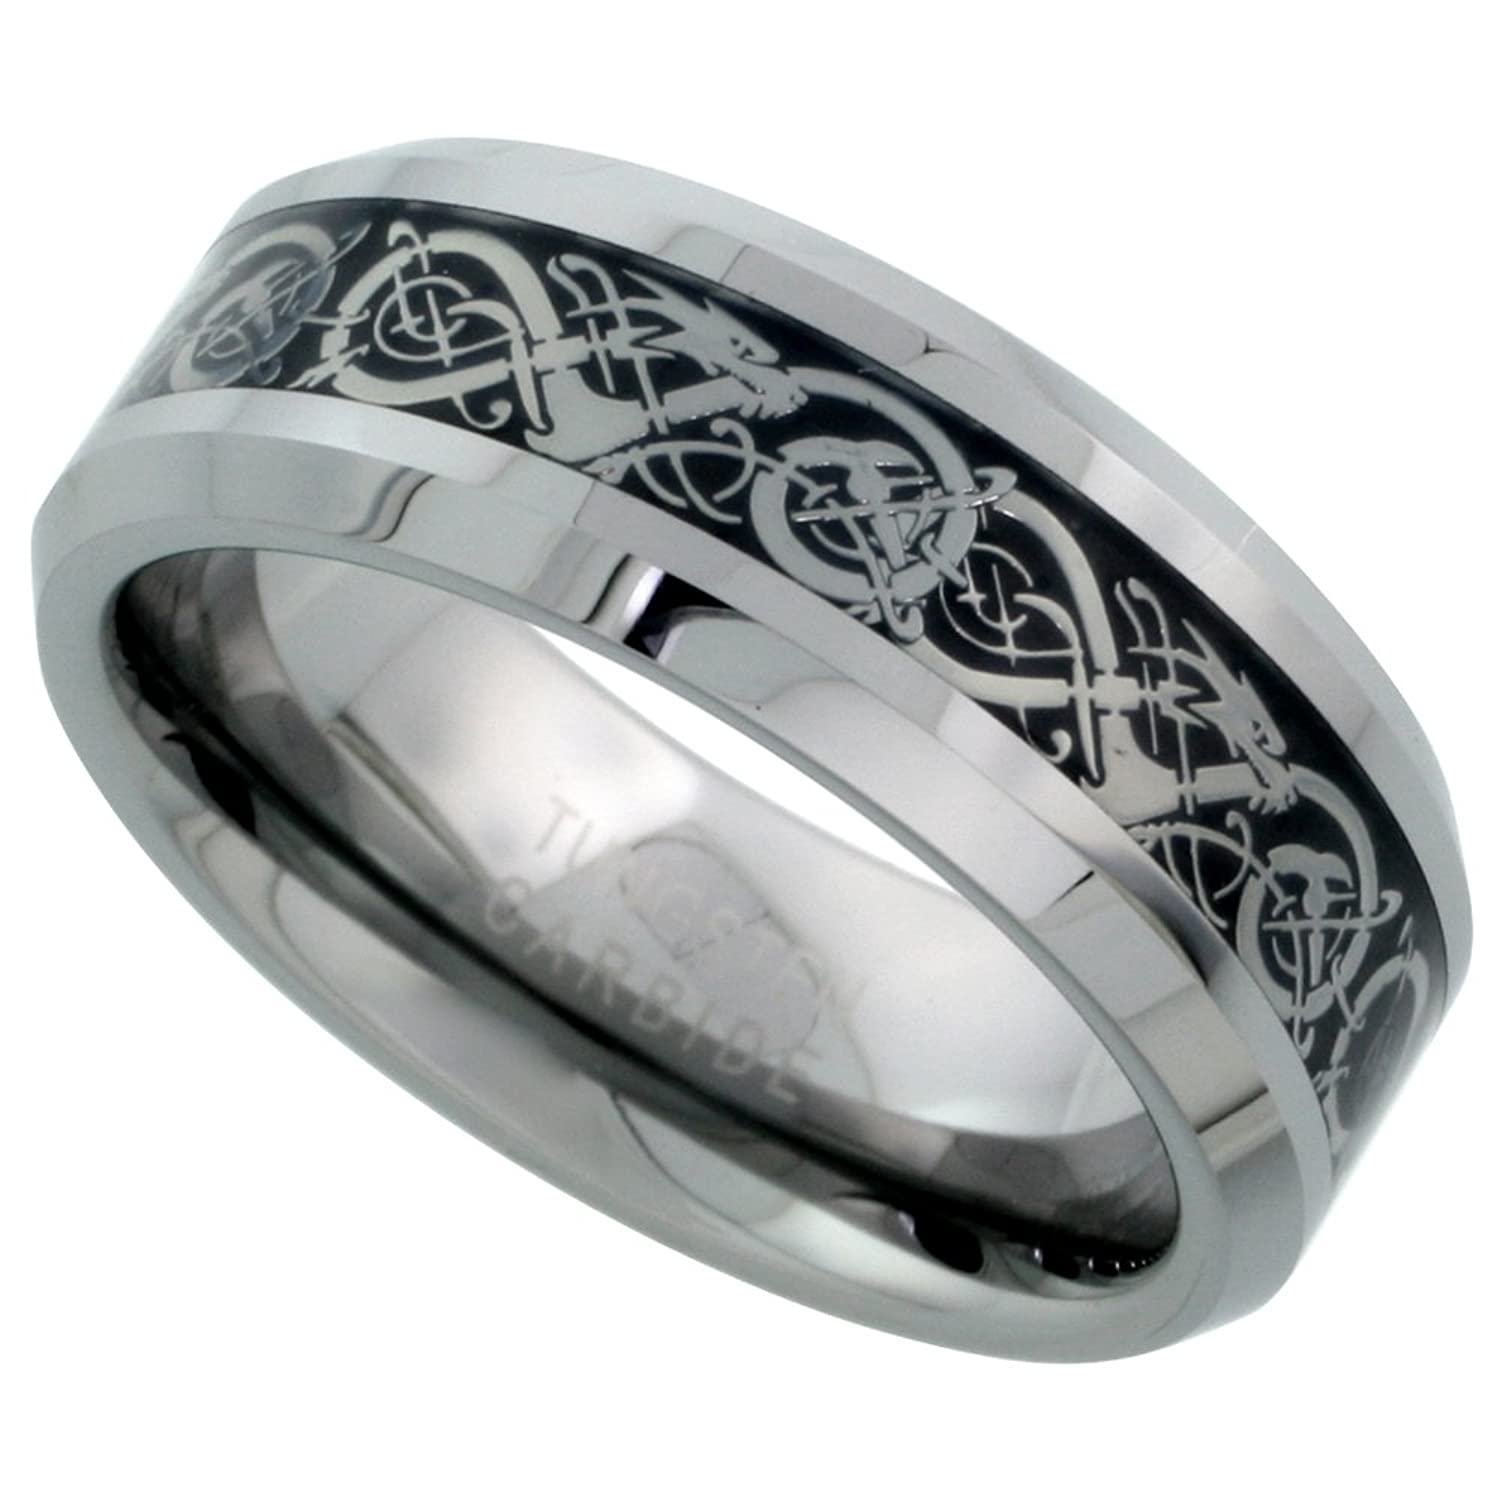 8mm Tungsten 900 Wedding Ring Inlaid Celtic Dragon Pattern Beveled Edges Comfort Fit Sizes 7